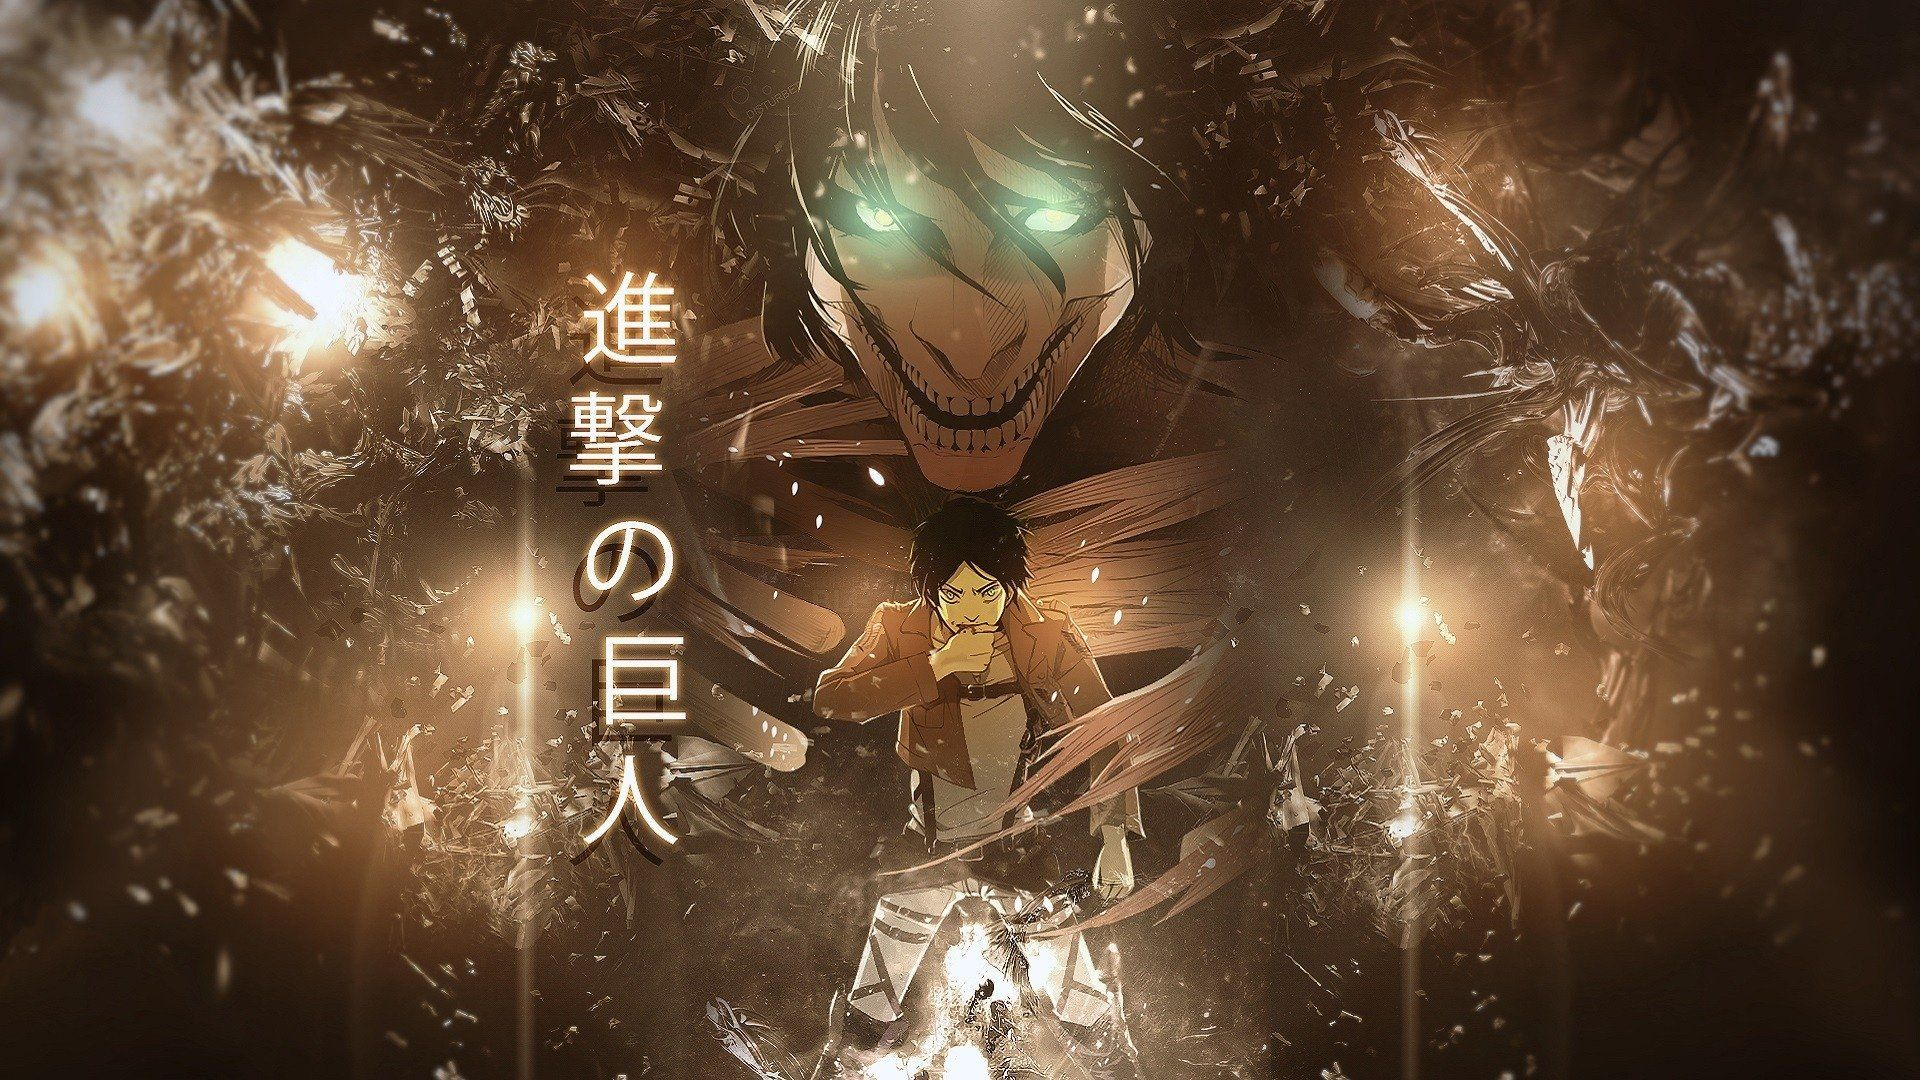 Anime Attack On Titan Eren Yeager Wallpaper Anime Attack On